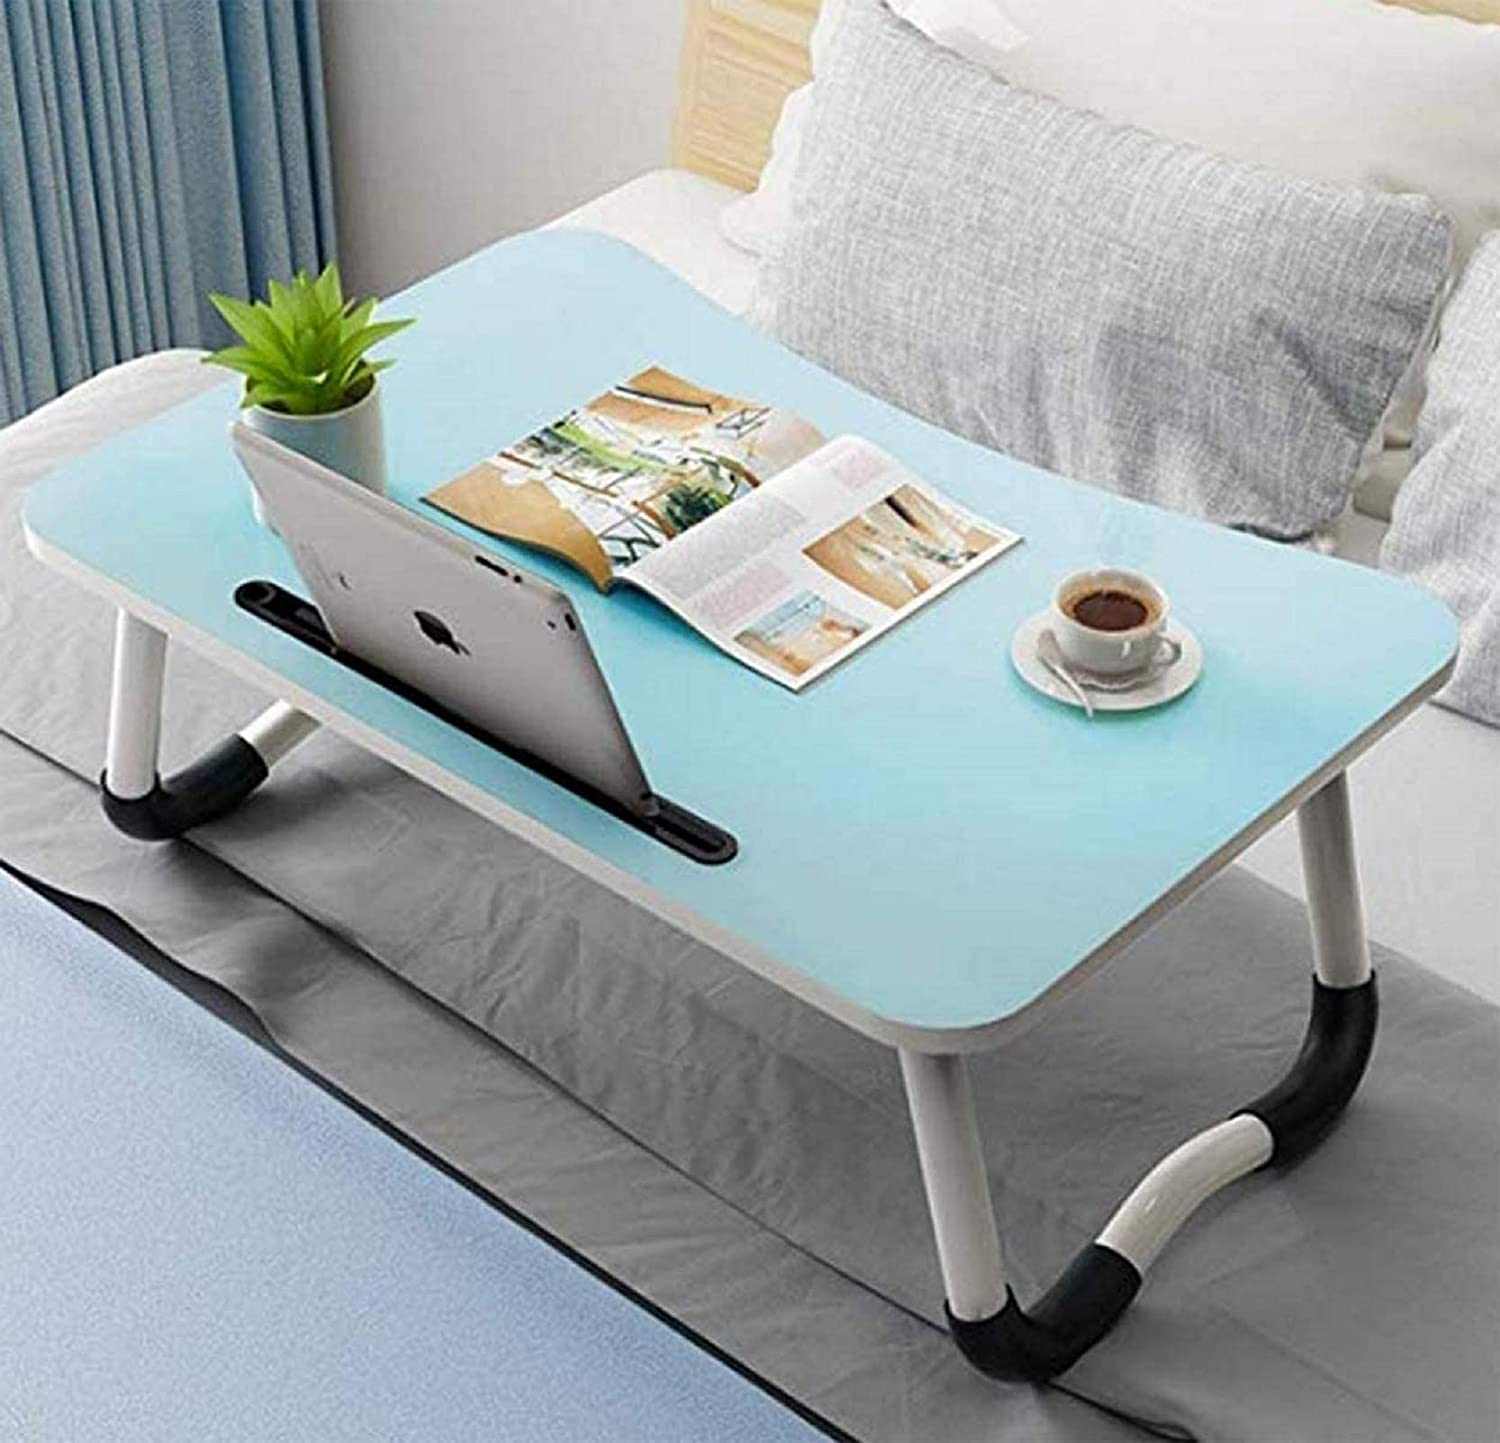 Laptop Desk Bed Table Lap Standing Desk for Bed and Sofa Breakfast Bed Tray Lap Desk Folding Breakfast Serving Coffee Tray Notebook Stand Reading Holder for Couch Floor Kids(60 x 40 cm)